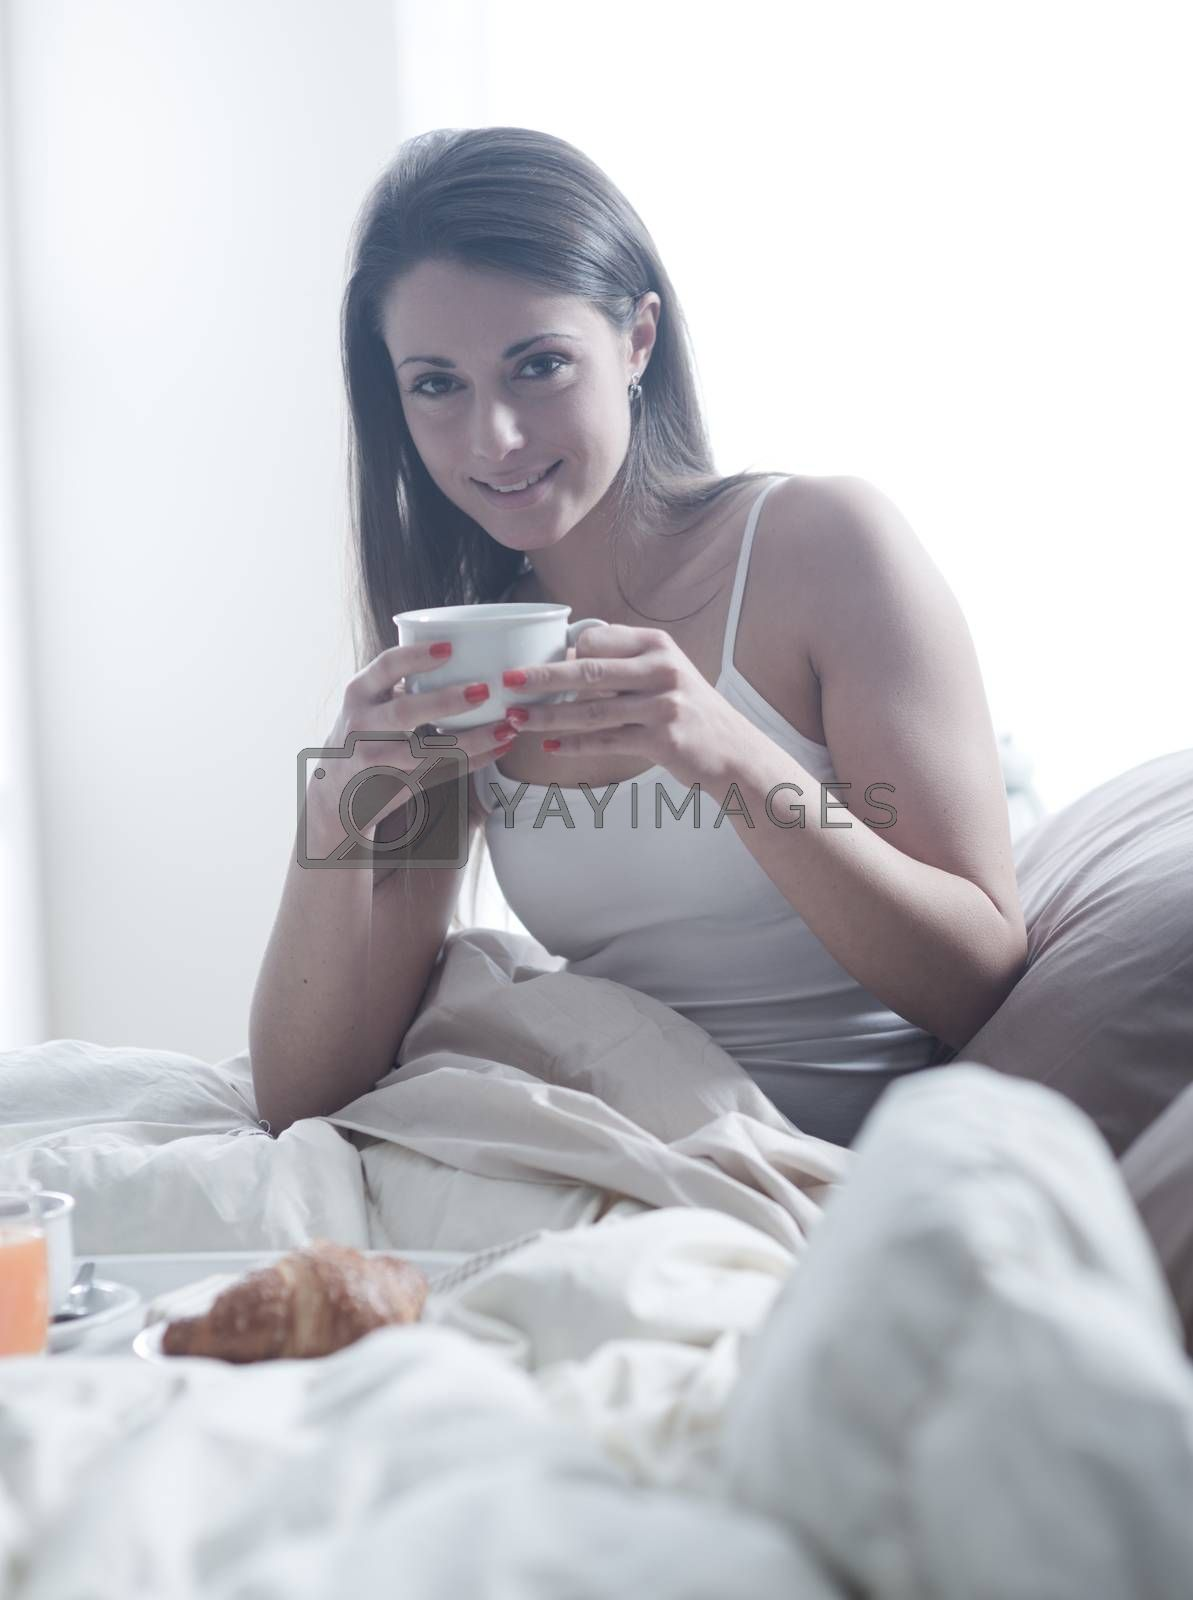 Lovely young woman lying with a cup of coffee and a tray of breakfast